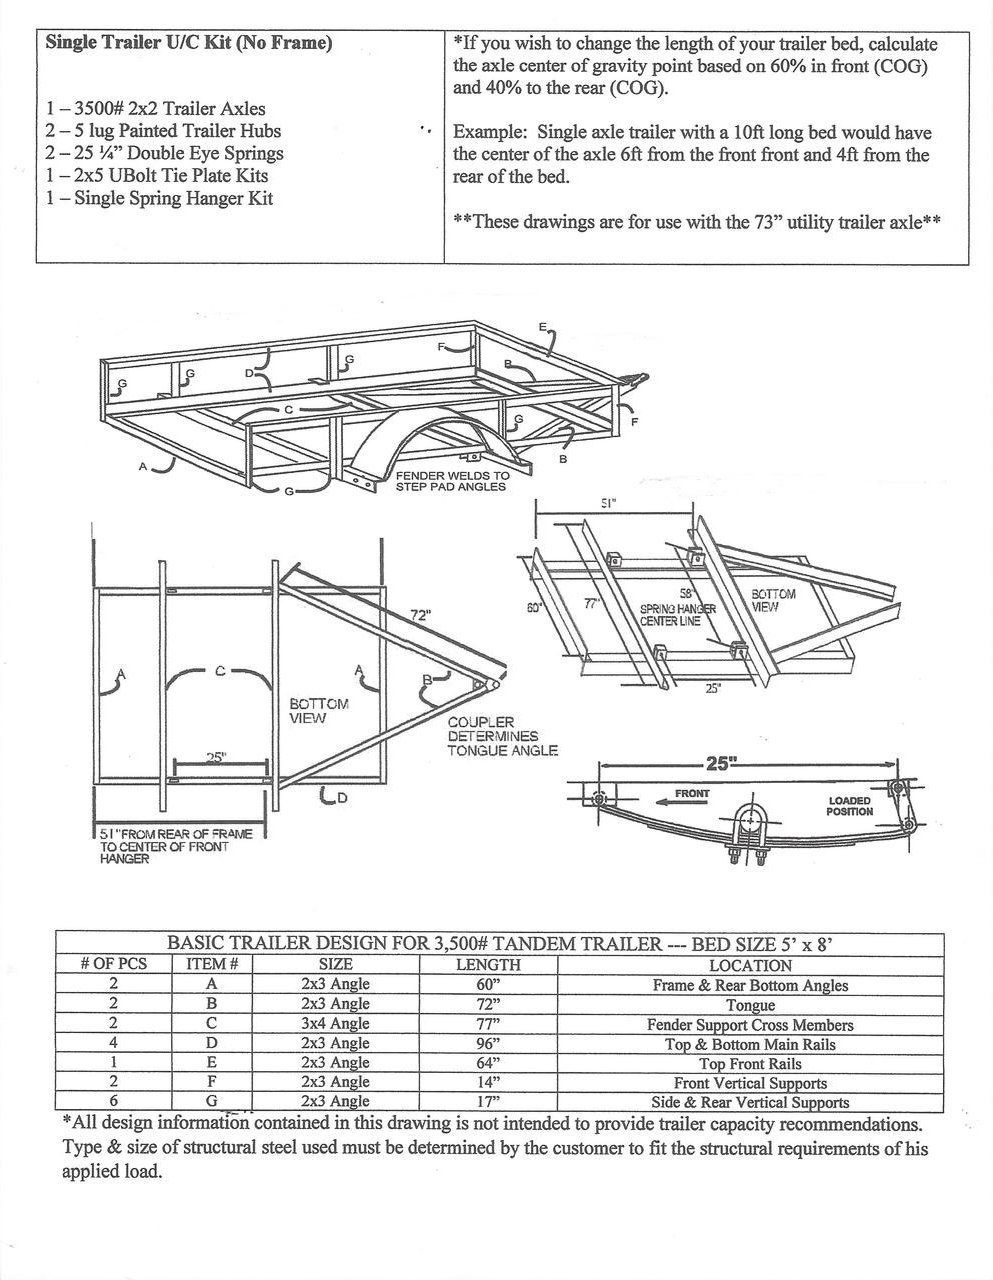 3500-single-undercarriage-trailer-kit.jpg